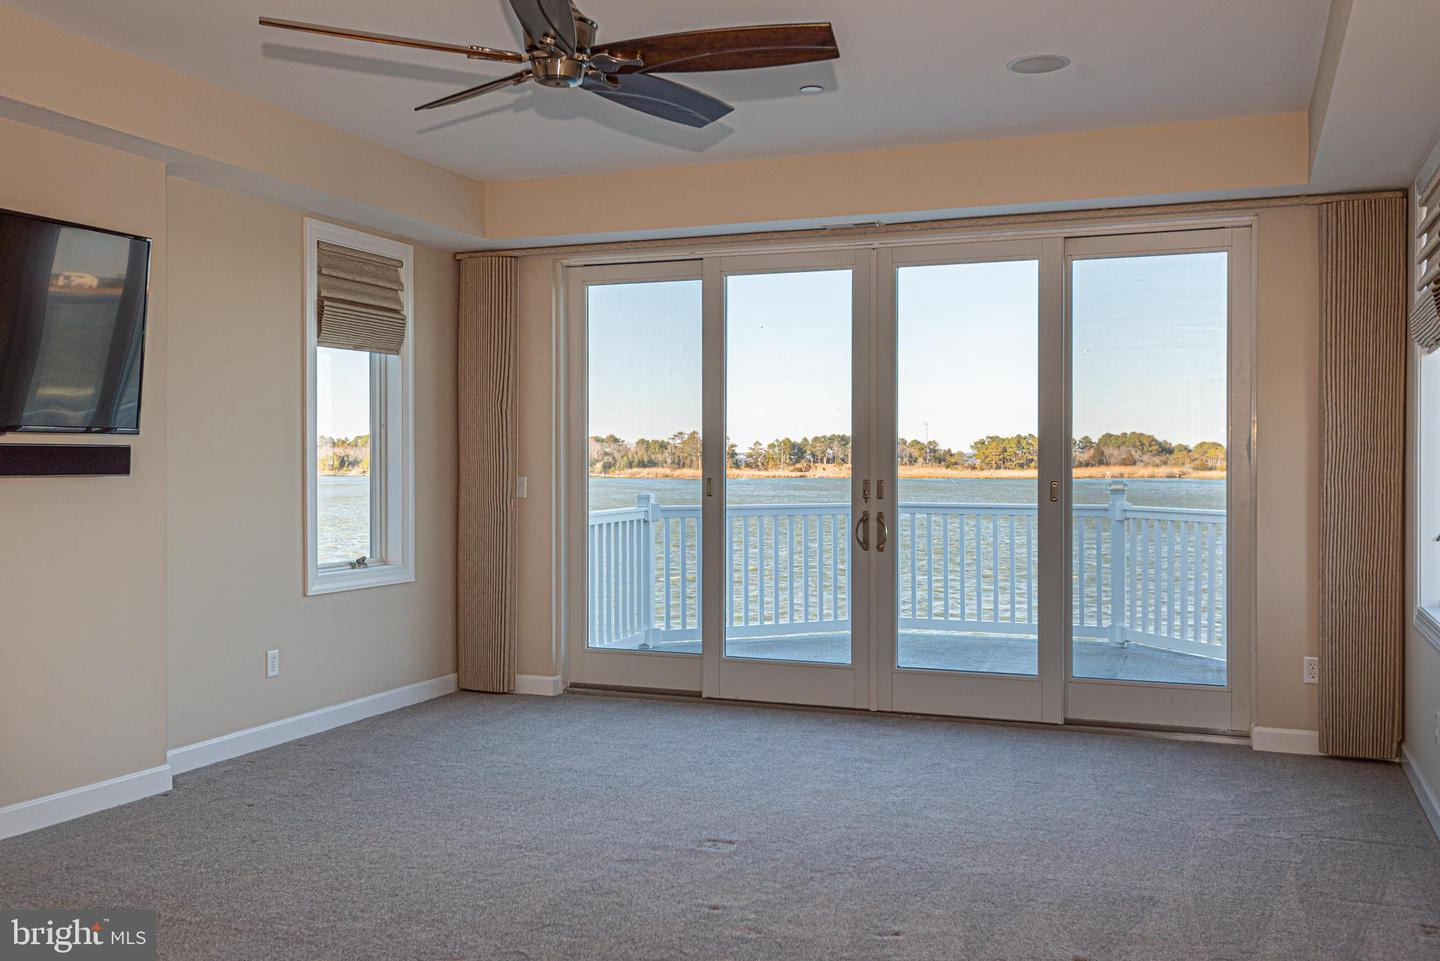 DESU154270-304005806354-2020-02-10-14-33-00 35 Inlet View | North Bethany, DE Real Estate For Sale | MLS# Desu154270  - Ocean Atlantic